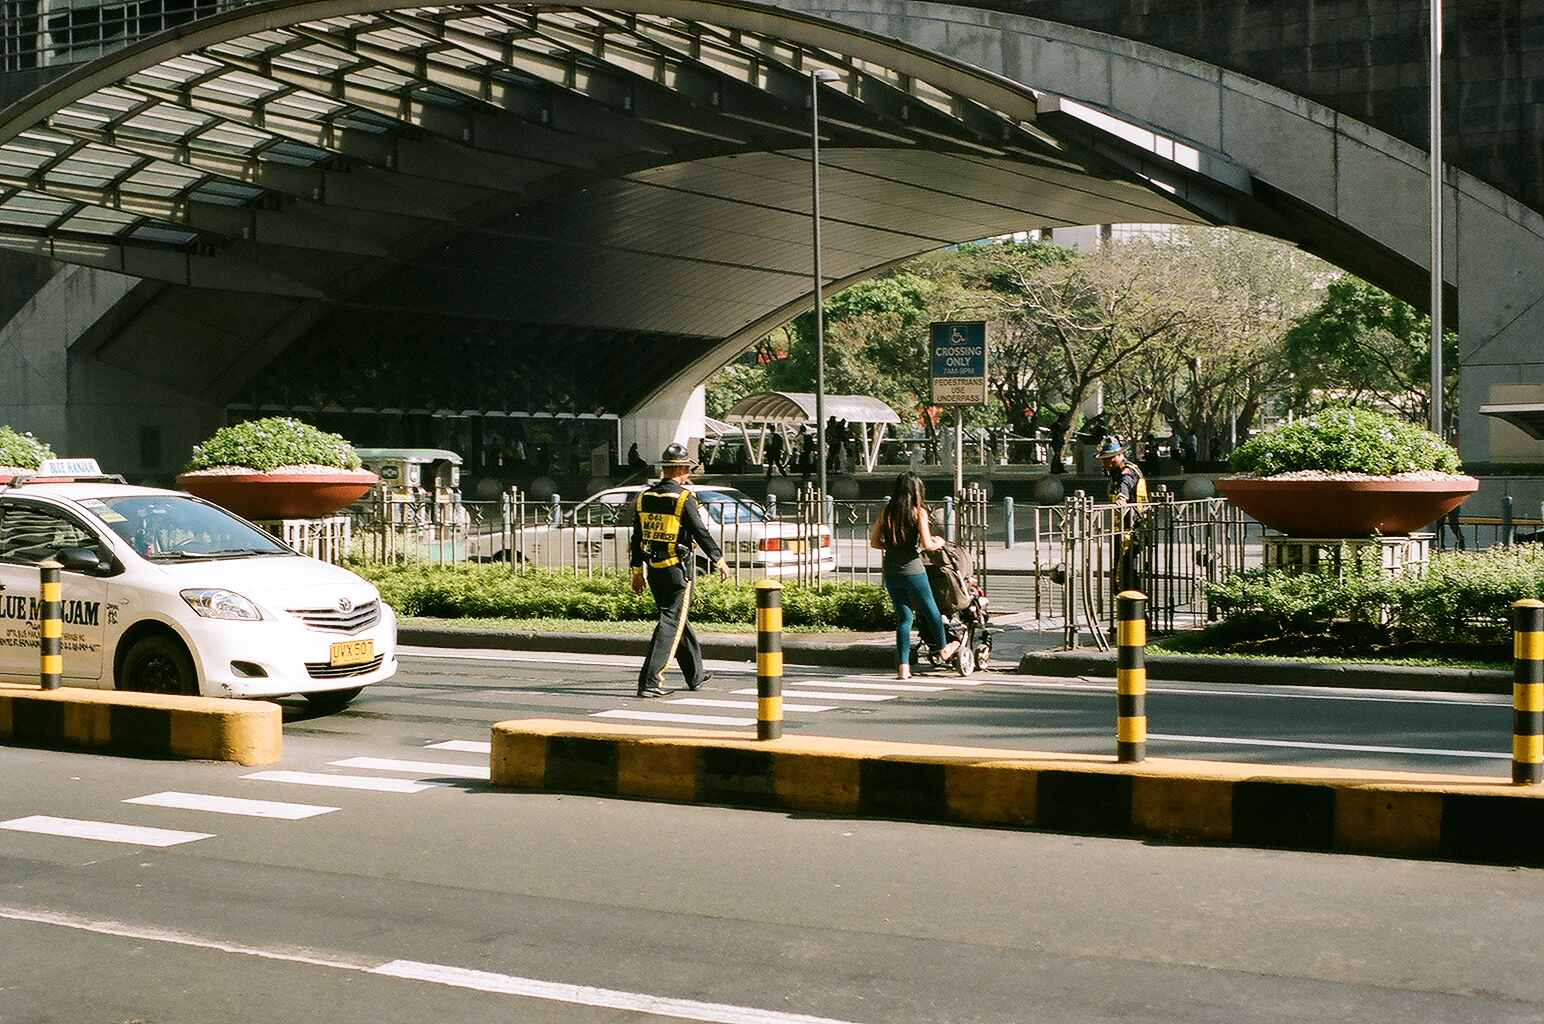 I will take care of you, Makati, Manila, Philippines (Summer 2016)  // Kodak Portra 160, Mamiya ZE-2, Epsom V330 // How can we build communities of kindness? It's quite peculiar because the fact that traffic only stops at a red light if no one is crossing (kind of dangerous) is one of the reason that we have the traffic marshals in the Philippines. Having said that, the fact that the Philippines has less rules also allows drivers to me more hospitable, squeezing on that extra passenger, taking on a chicken, driving a bit above limit, stopping because someone needs to use the bathroom. To what extent do 'too many rules' mean that we don't give as much as we can (obviously without anyone getting hurt.)